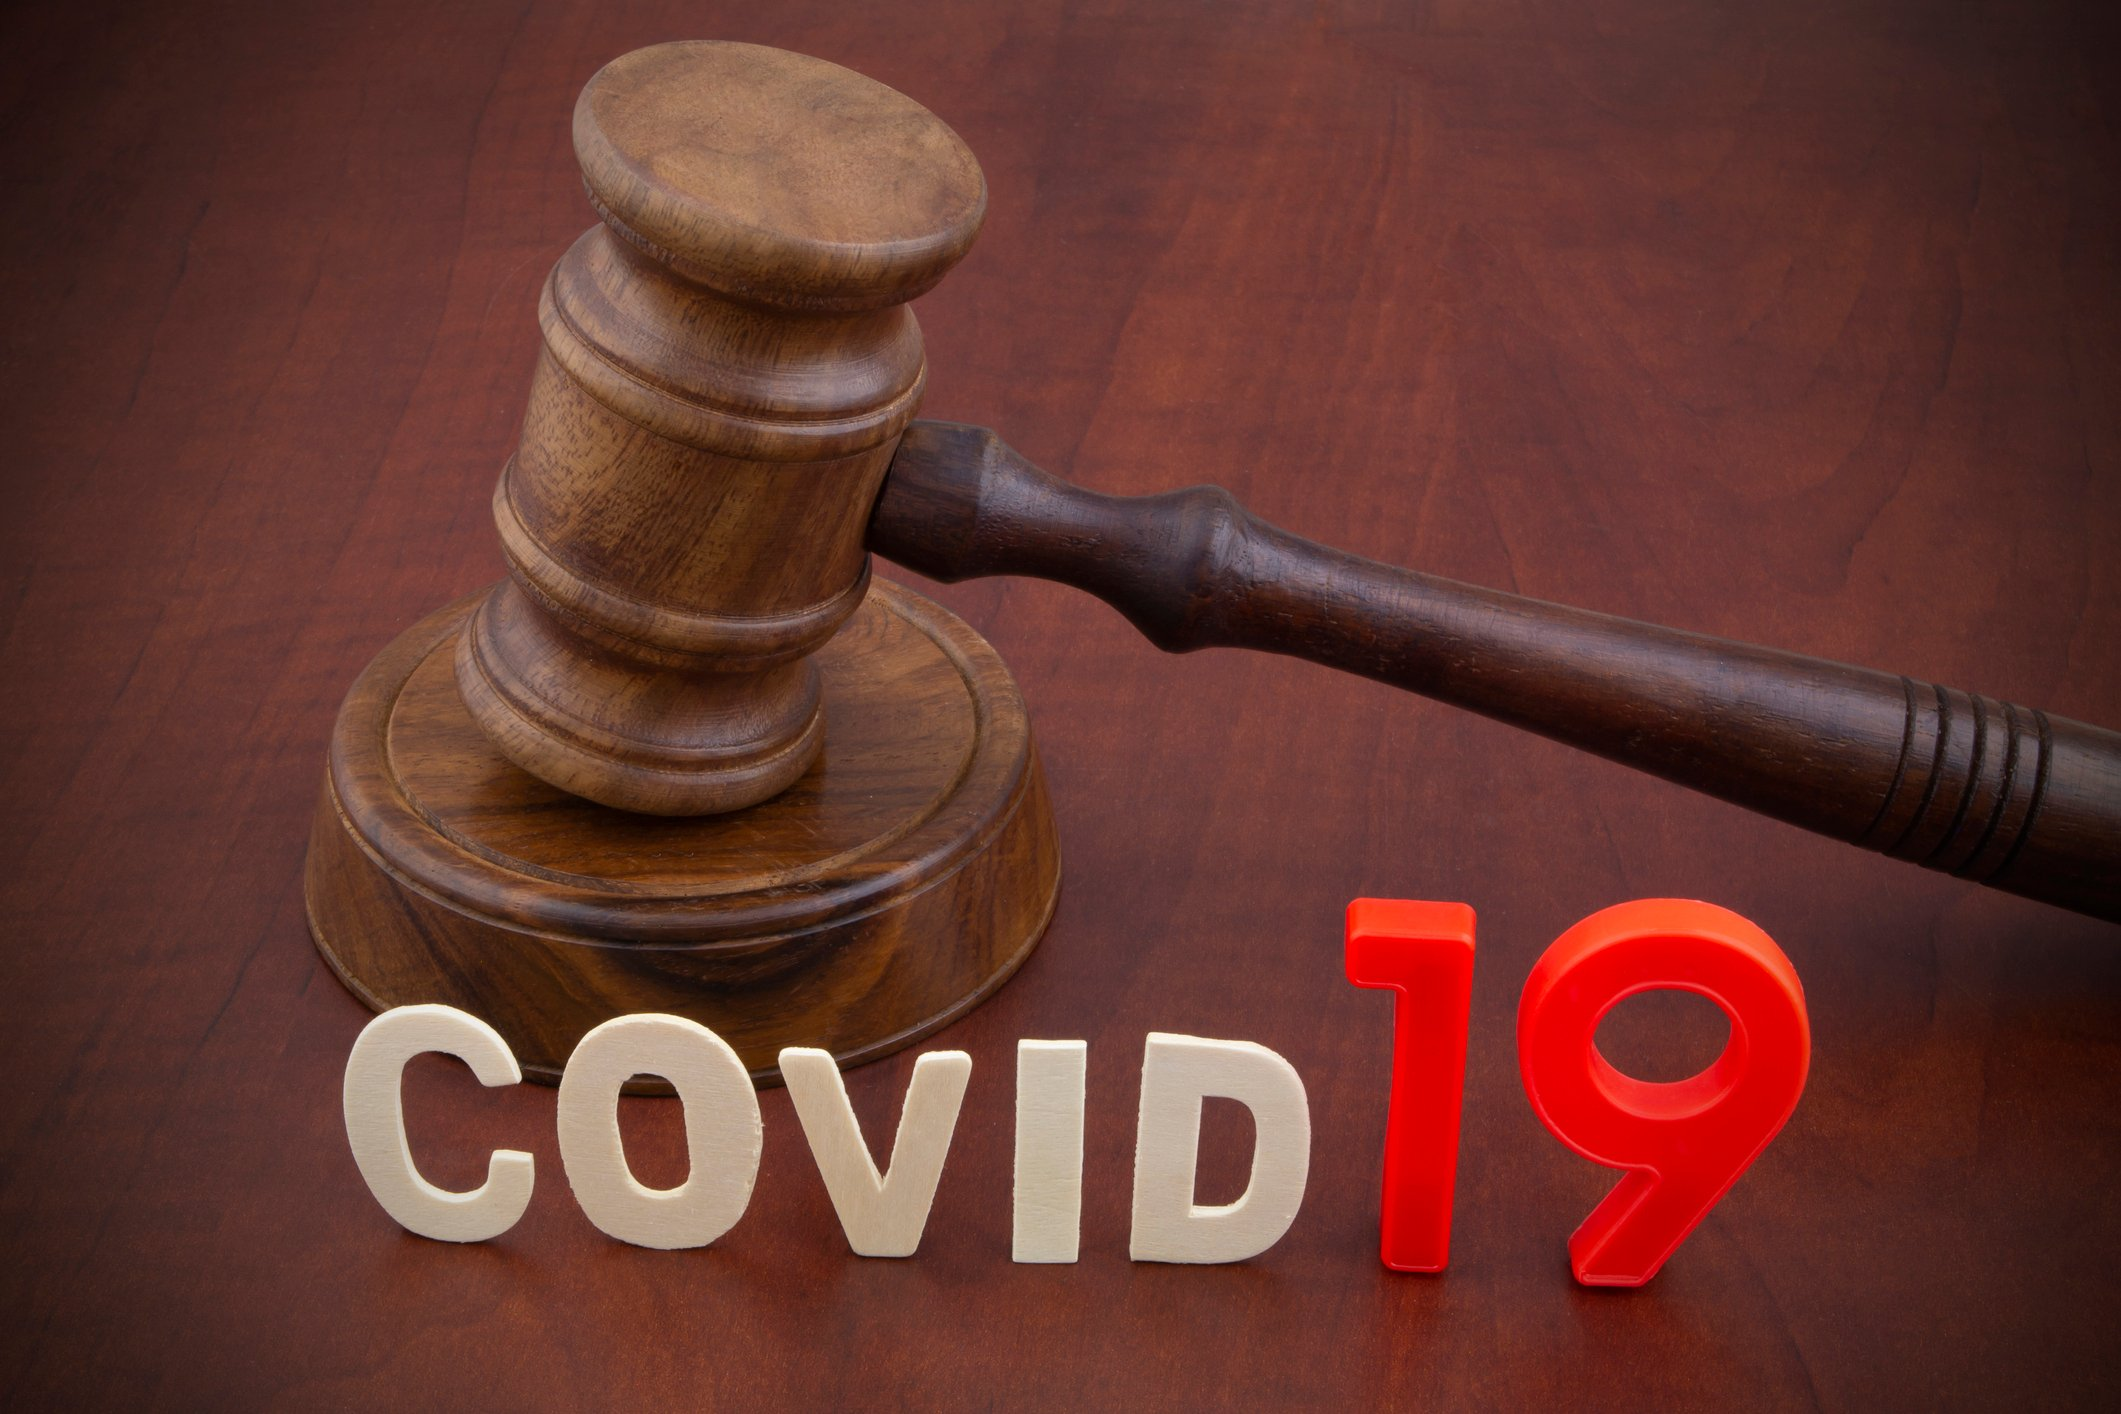 Judge's gavel with letters covid19. Concept of quarantine and law against covid-19.